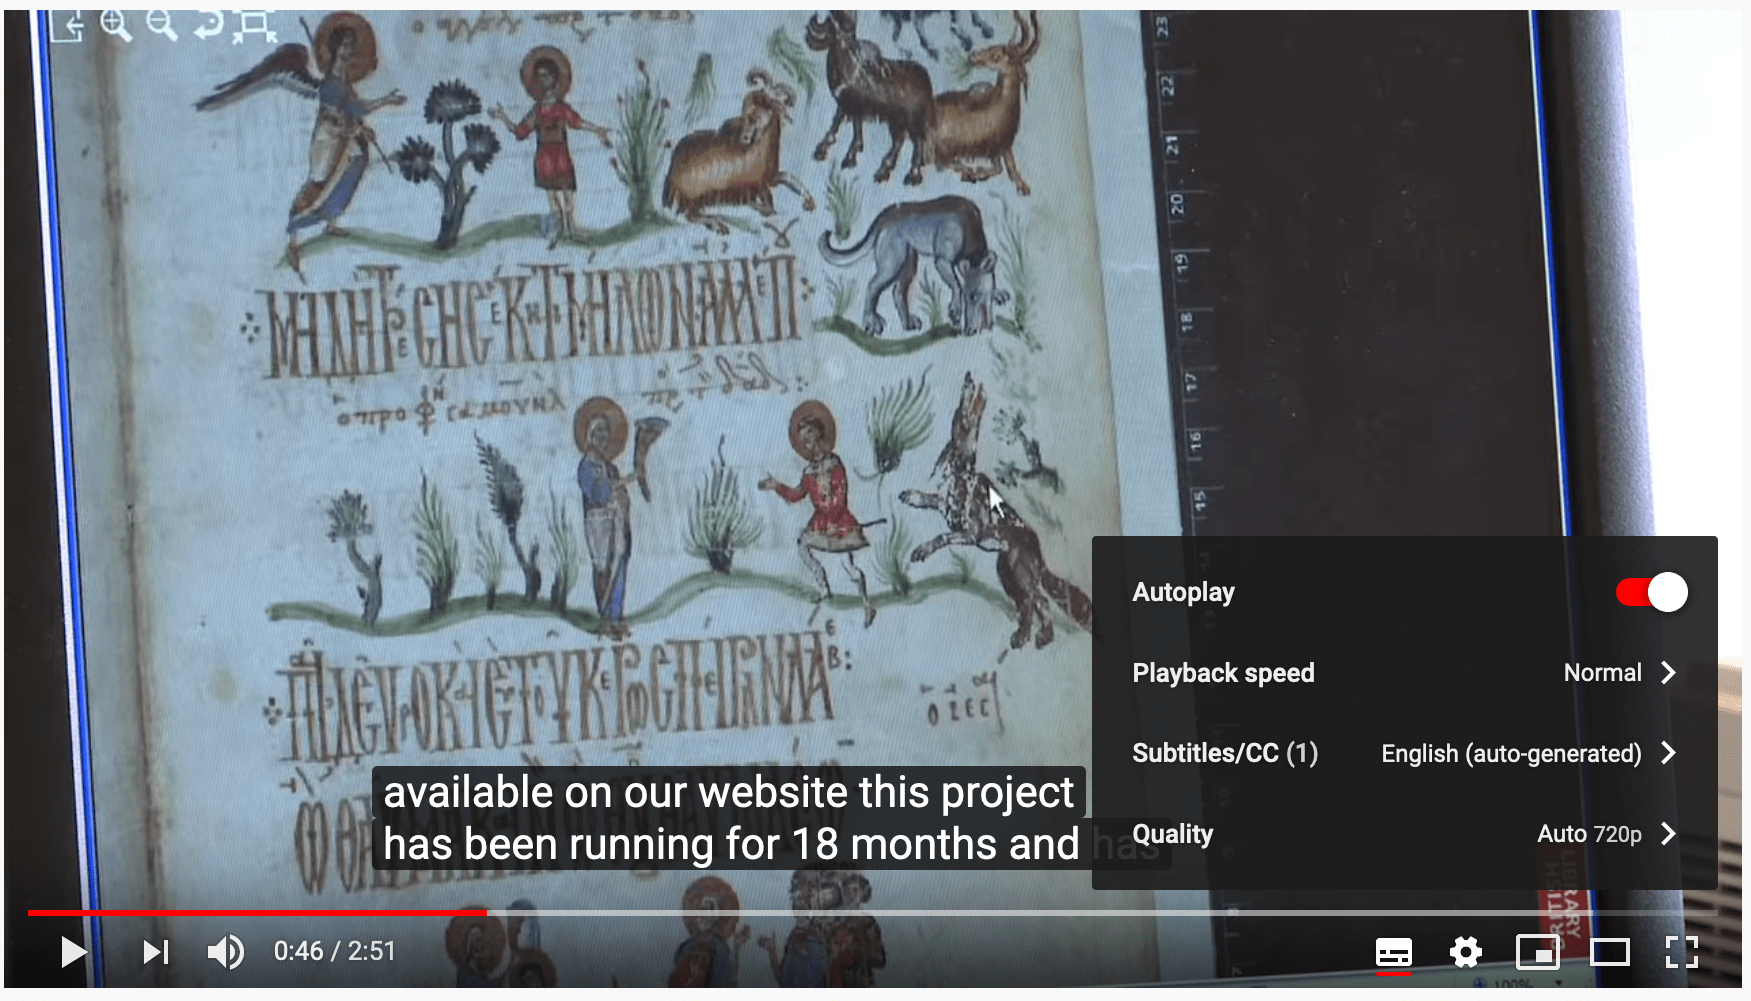 Screen shot of a Youtube video showing accessibility features including closed captioning and adjustment of playback speed